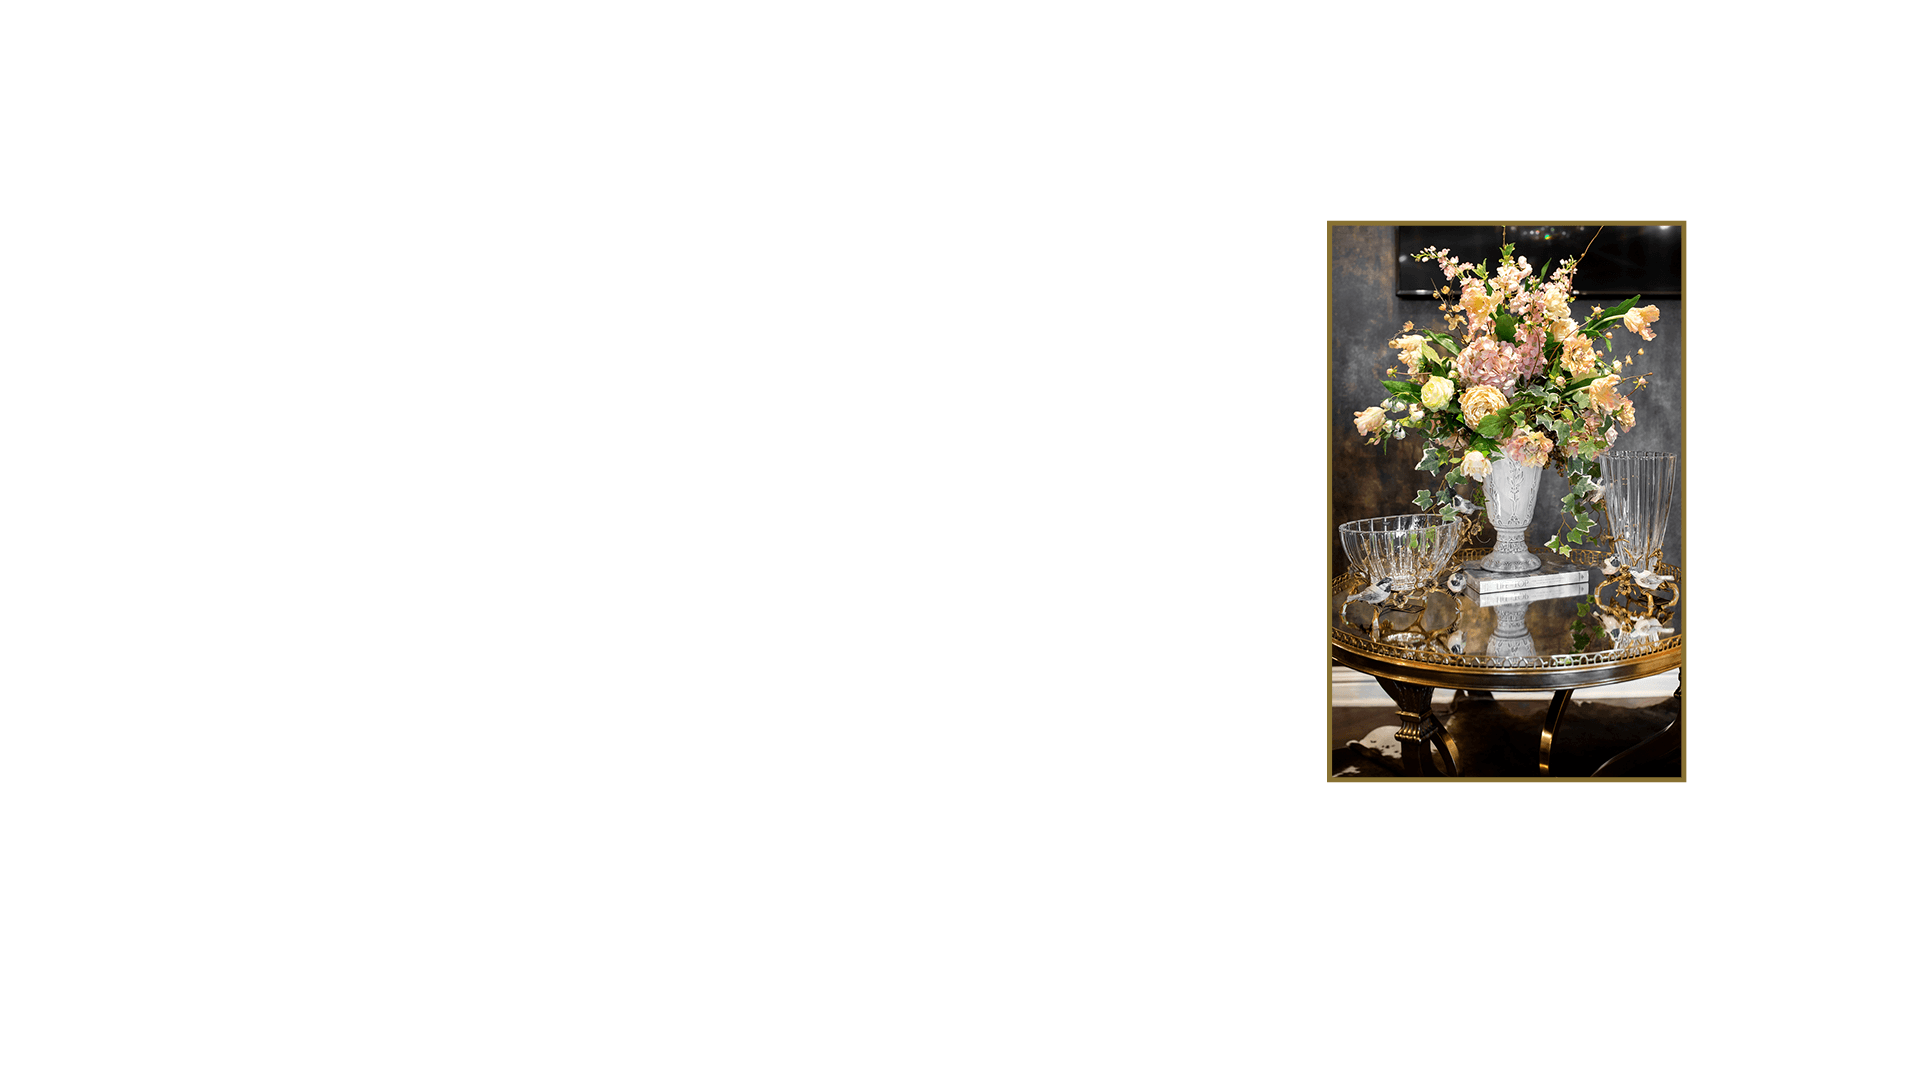 White Urn Floral Arrangement on a Gold Mirrored Foyer Table Luxury Design